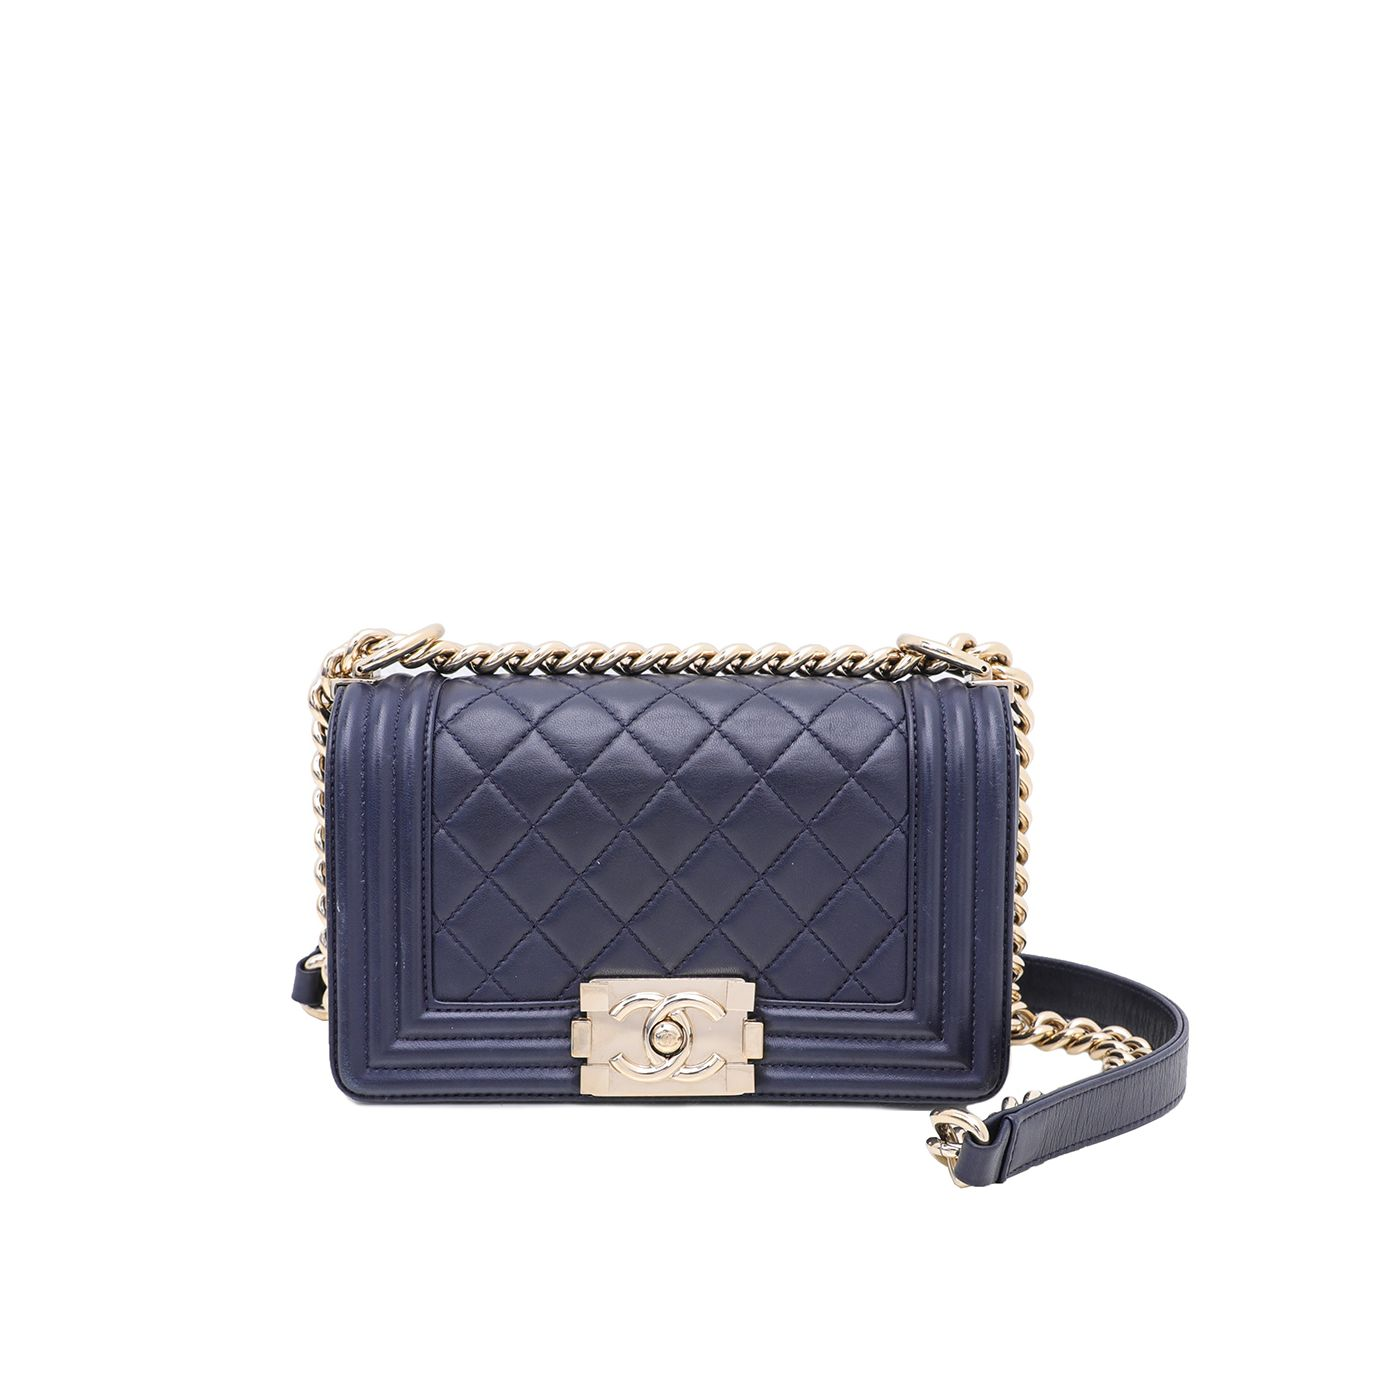 Chanel Navy Blue Le Boy Small Bag